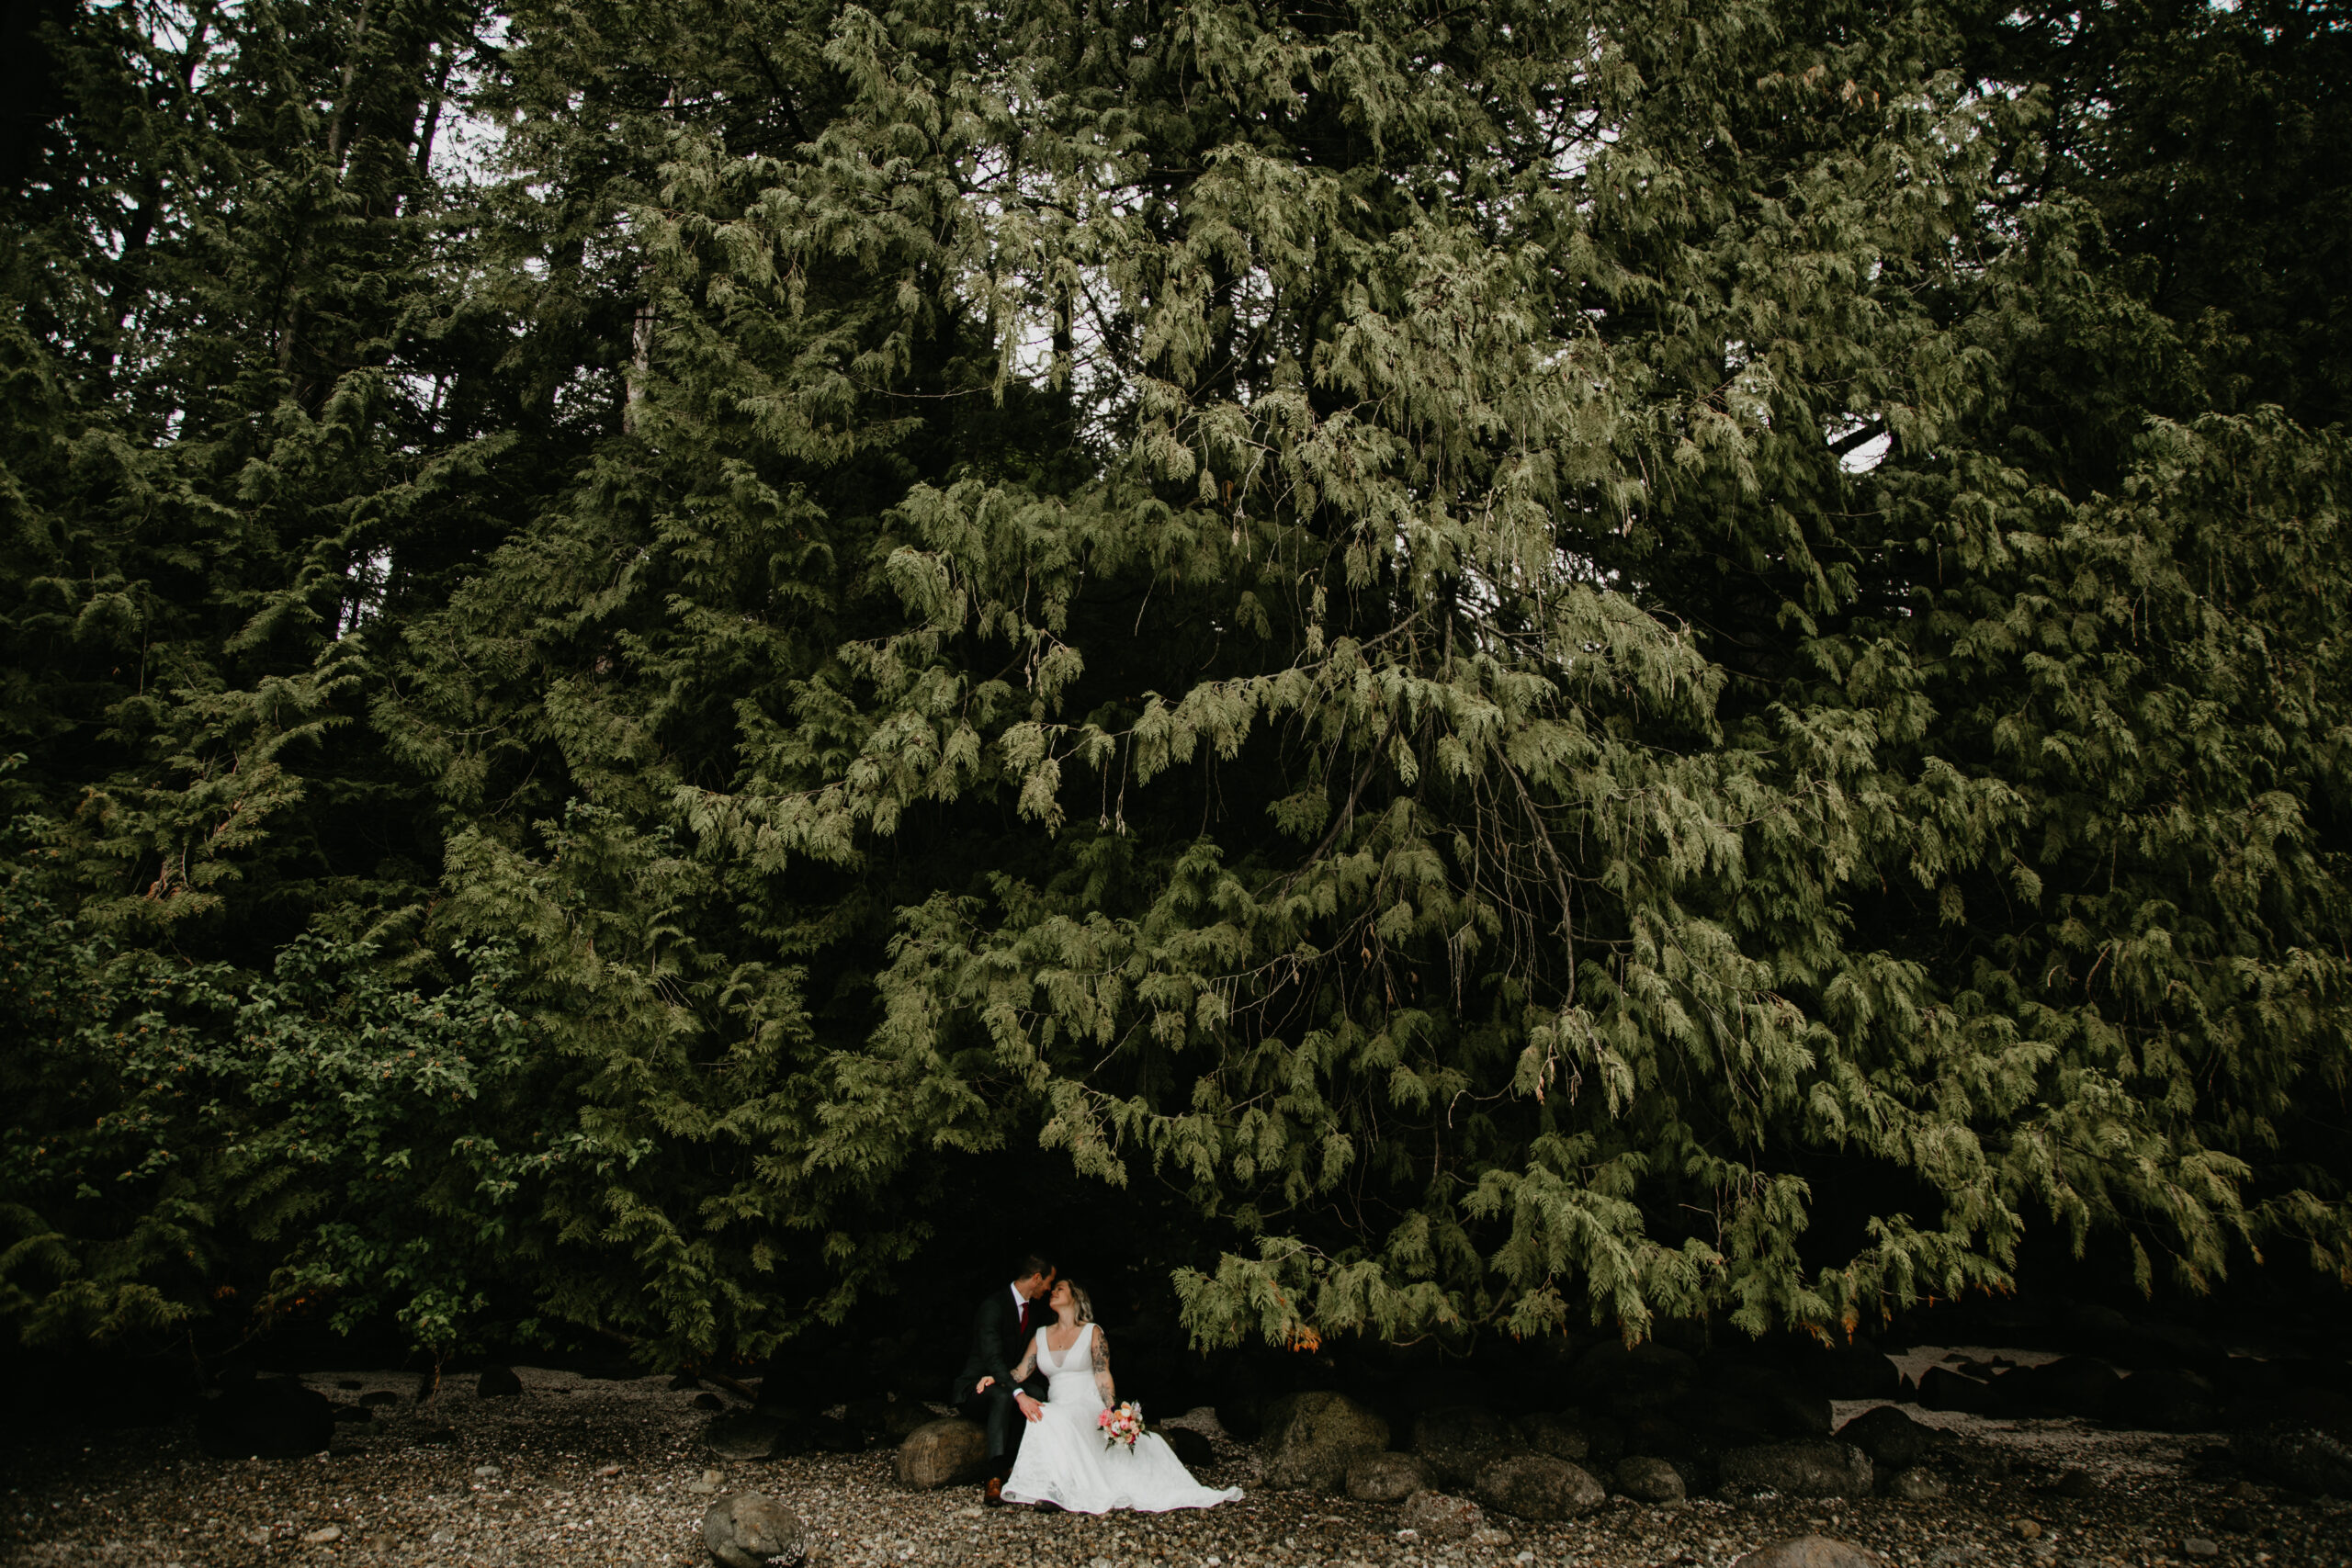 Wedding at Cates Park, North Vancouver